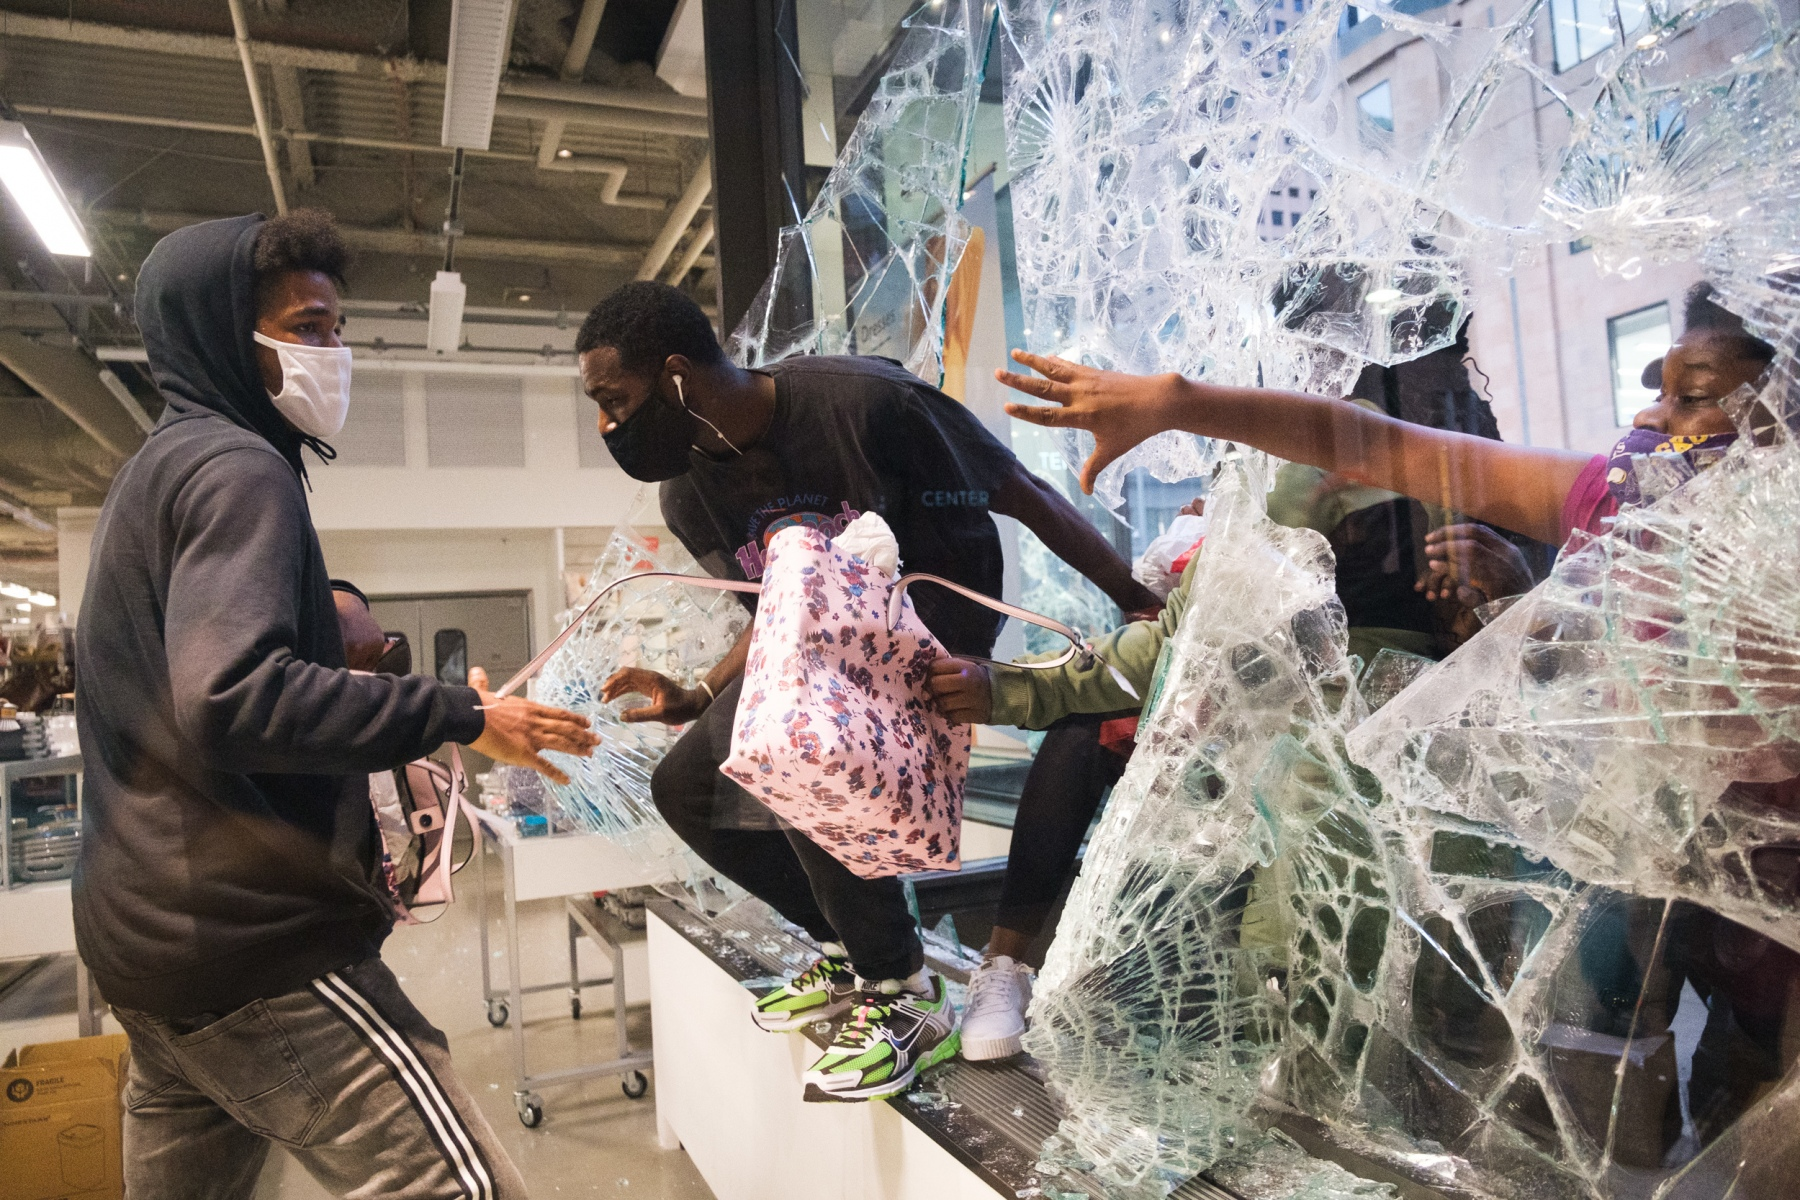 Bystanders begin breaking into and looting stores along Nicollet Avenue on August 26, 2020.